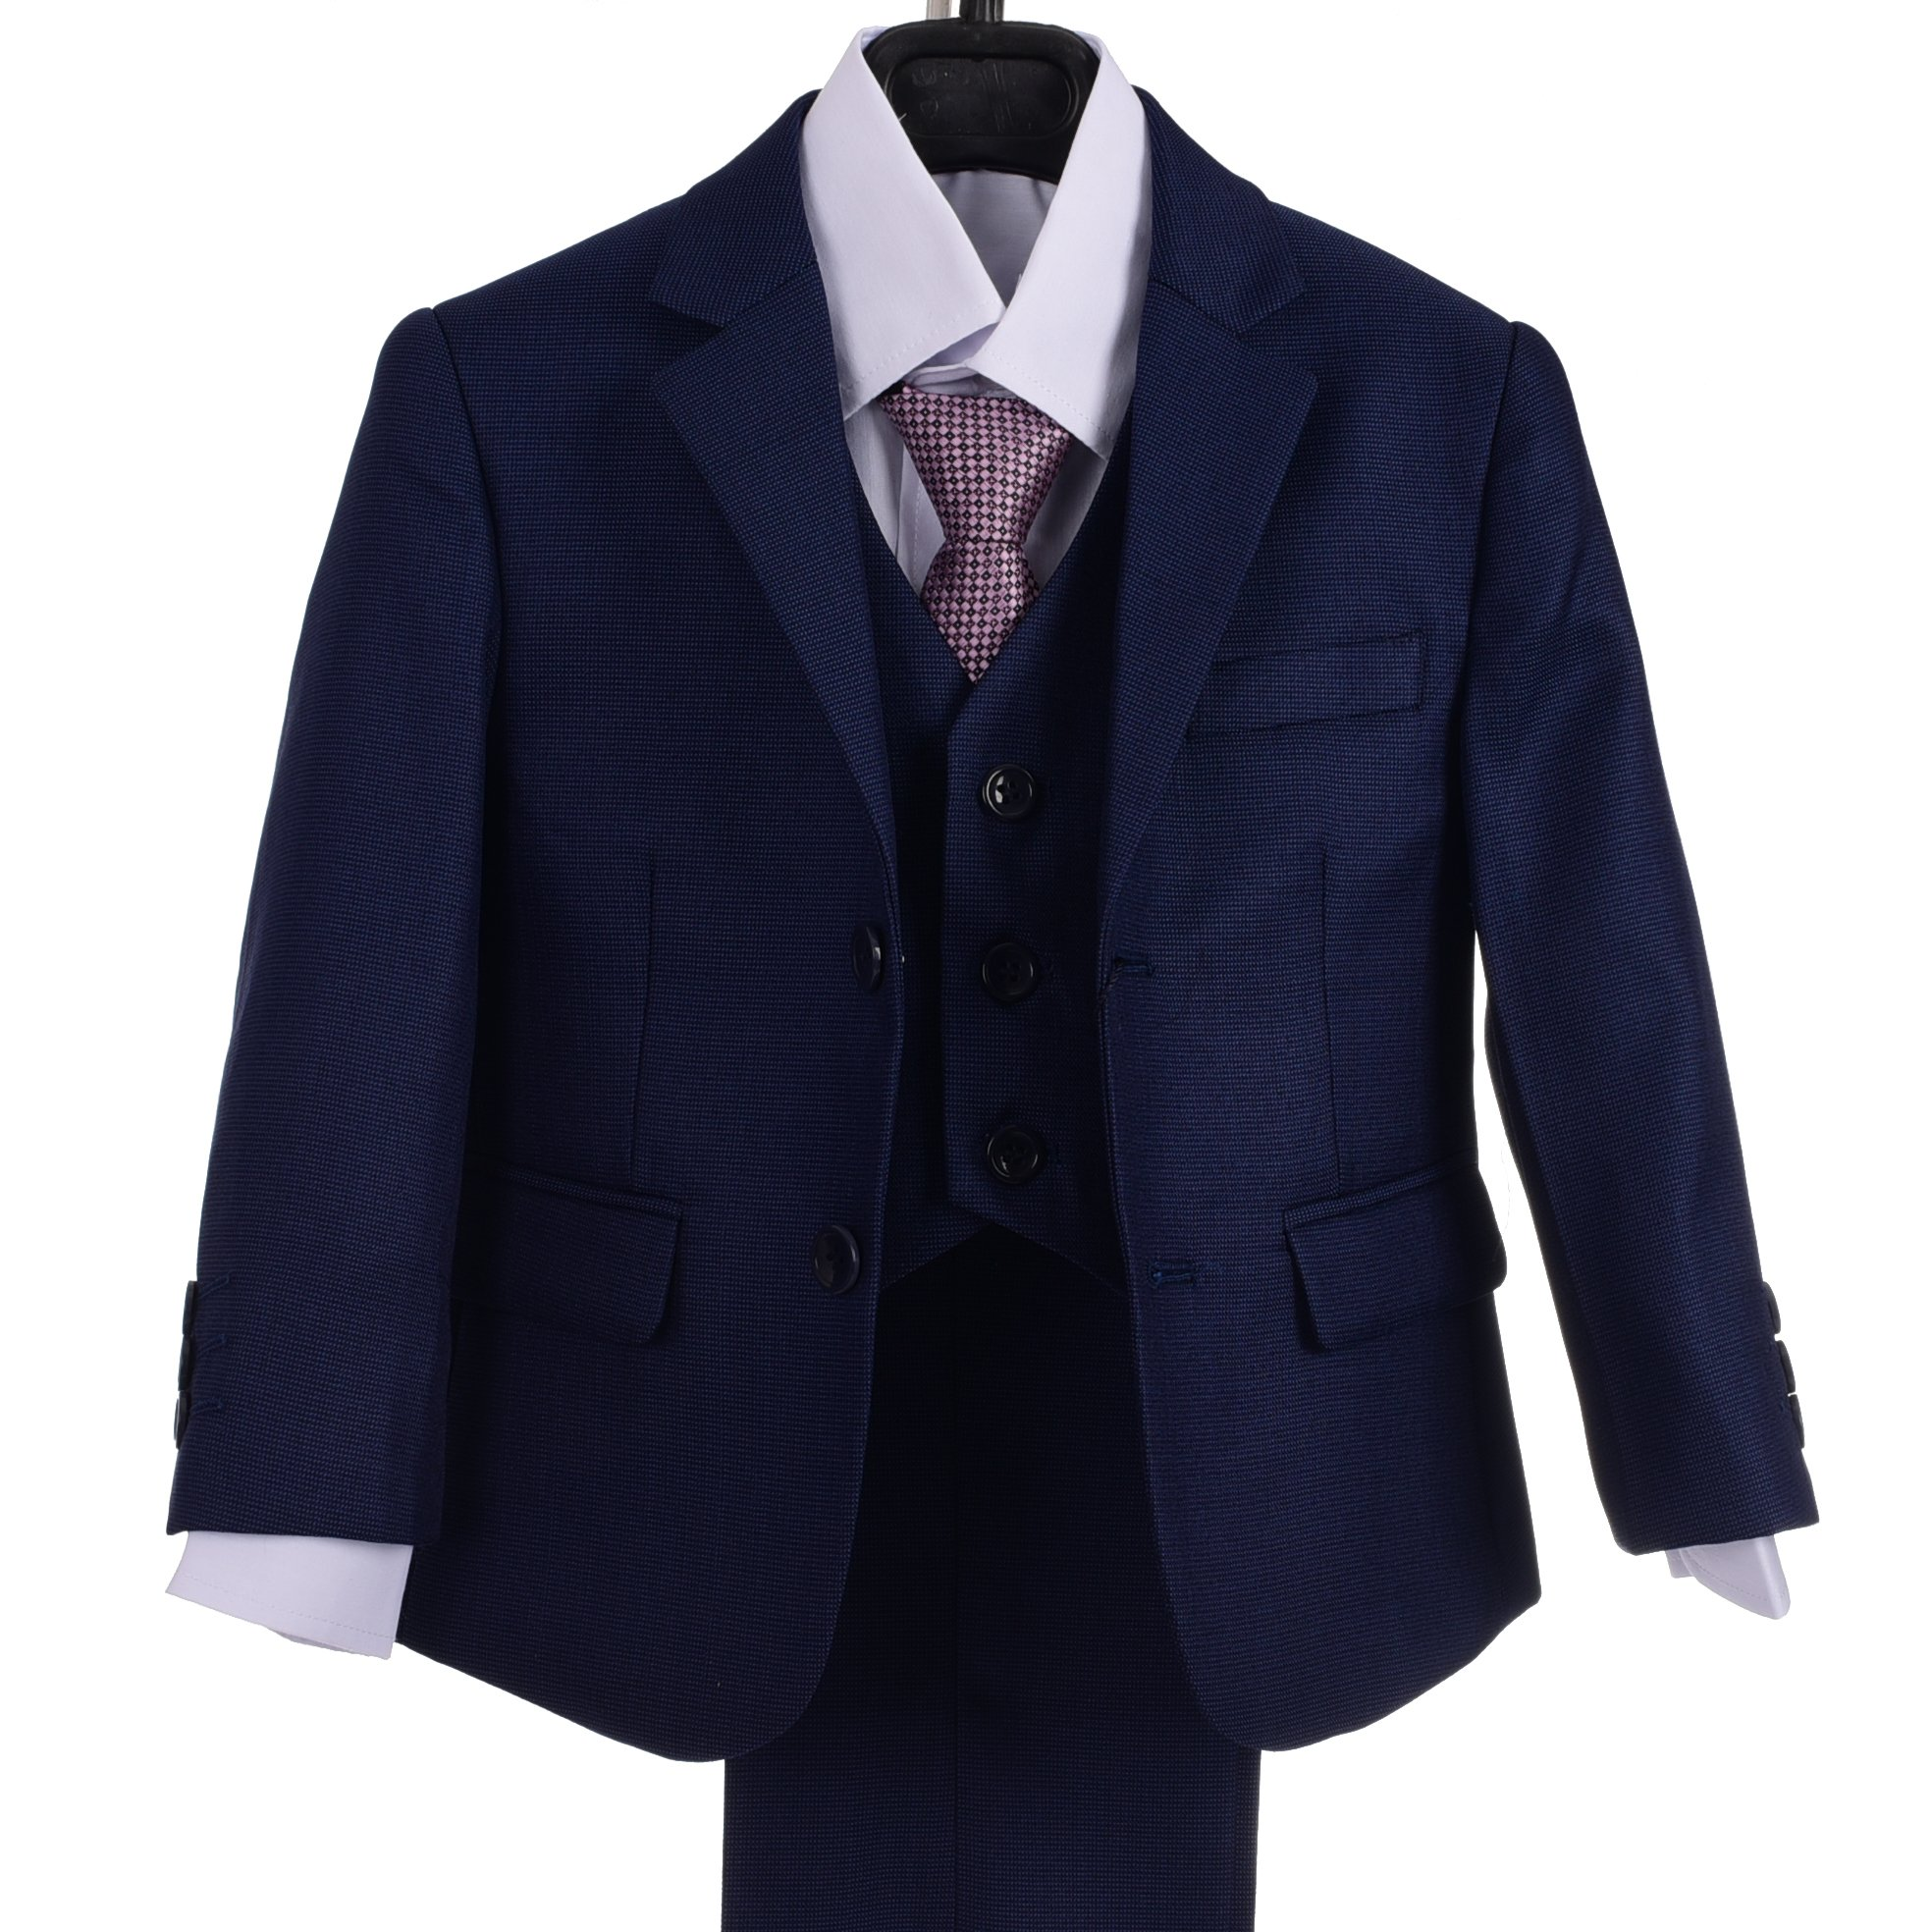 Dressy Daisy Boys Formal Dress Suits 5 Pcs Set Modern Fit Wedding Outfit Dresswear Size 2T Navy Blue